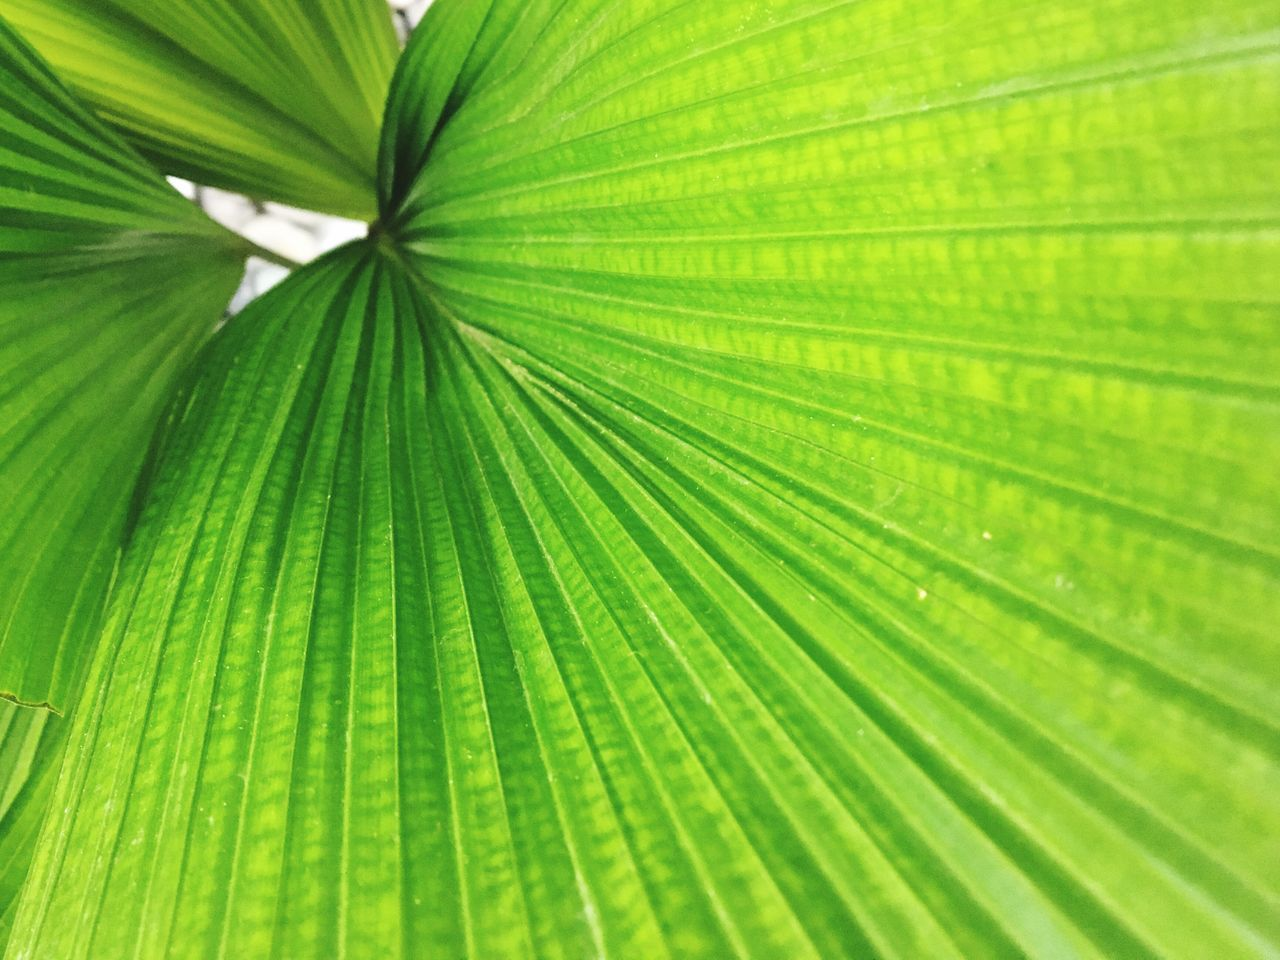 leaf, green color, nature, growth, backgrounds, palm leaf, full frame, frond, freshness, fragility, beauty in nature, close-up, plant, palm tree, no people, day, outdoors